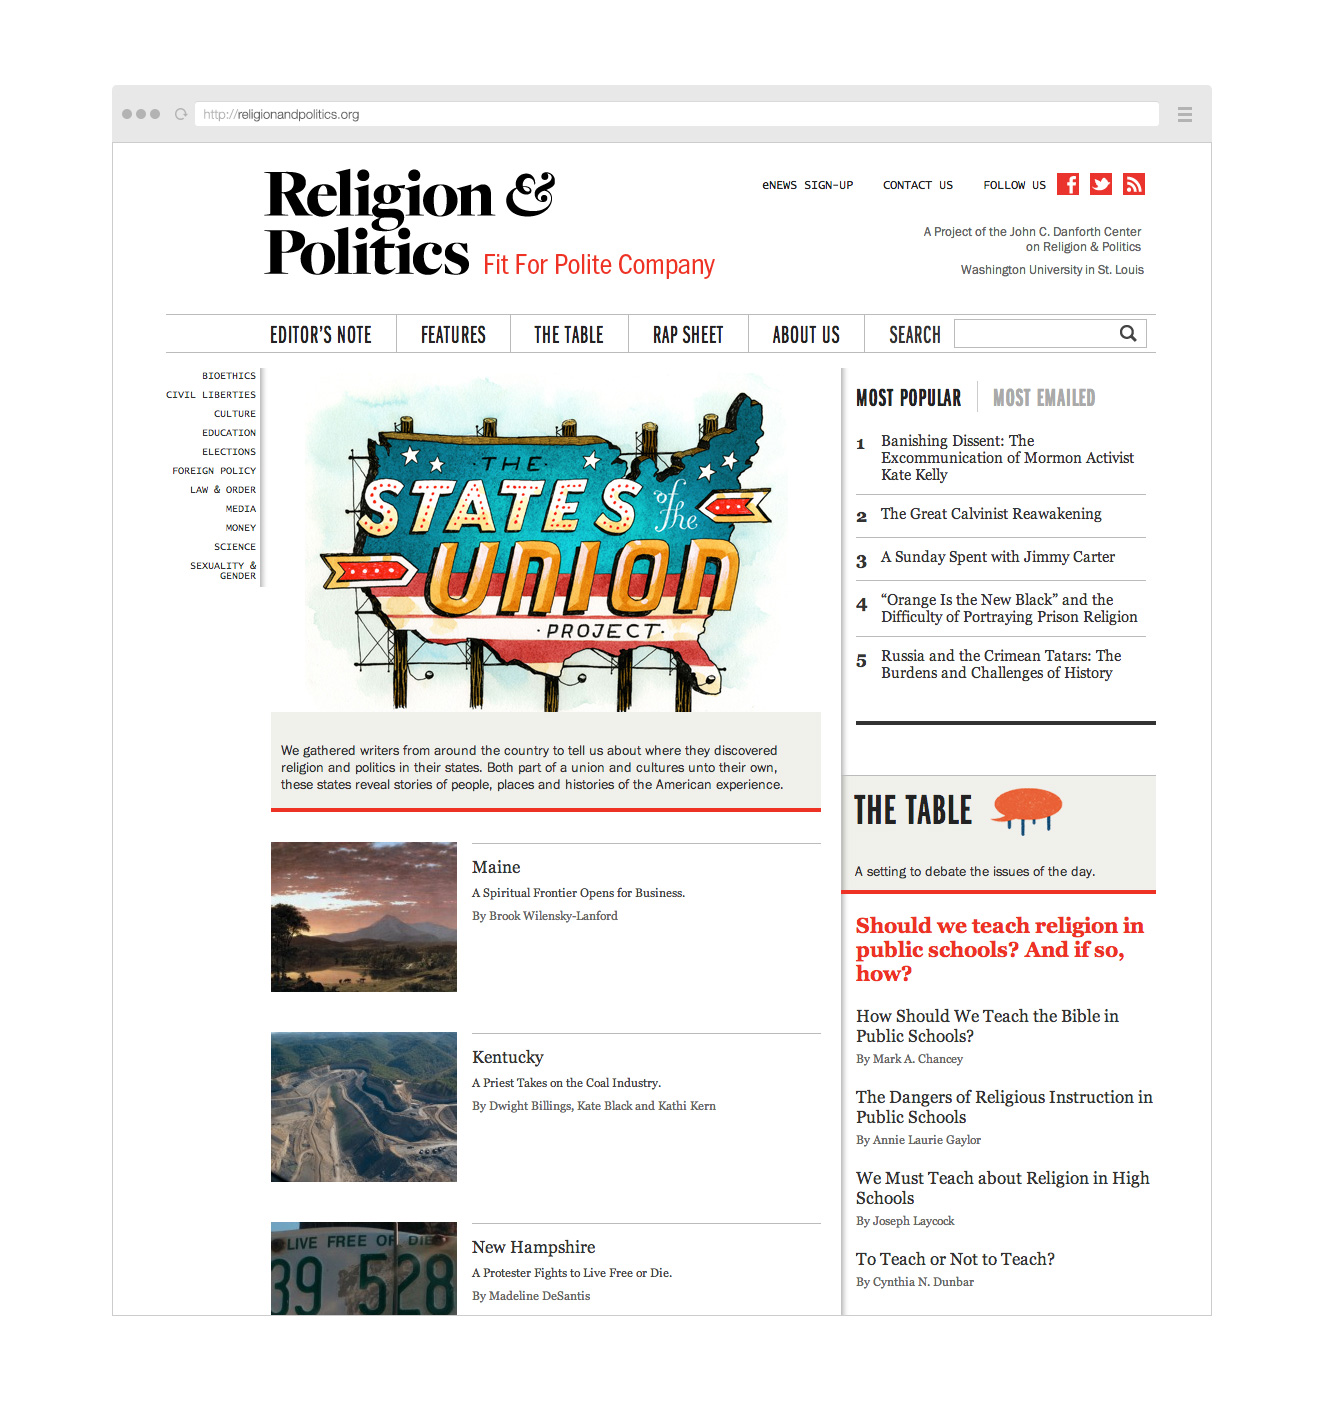 Point Five Religion & Politics website